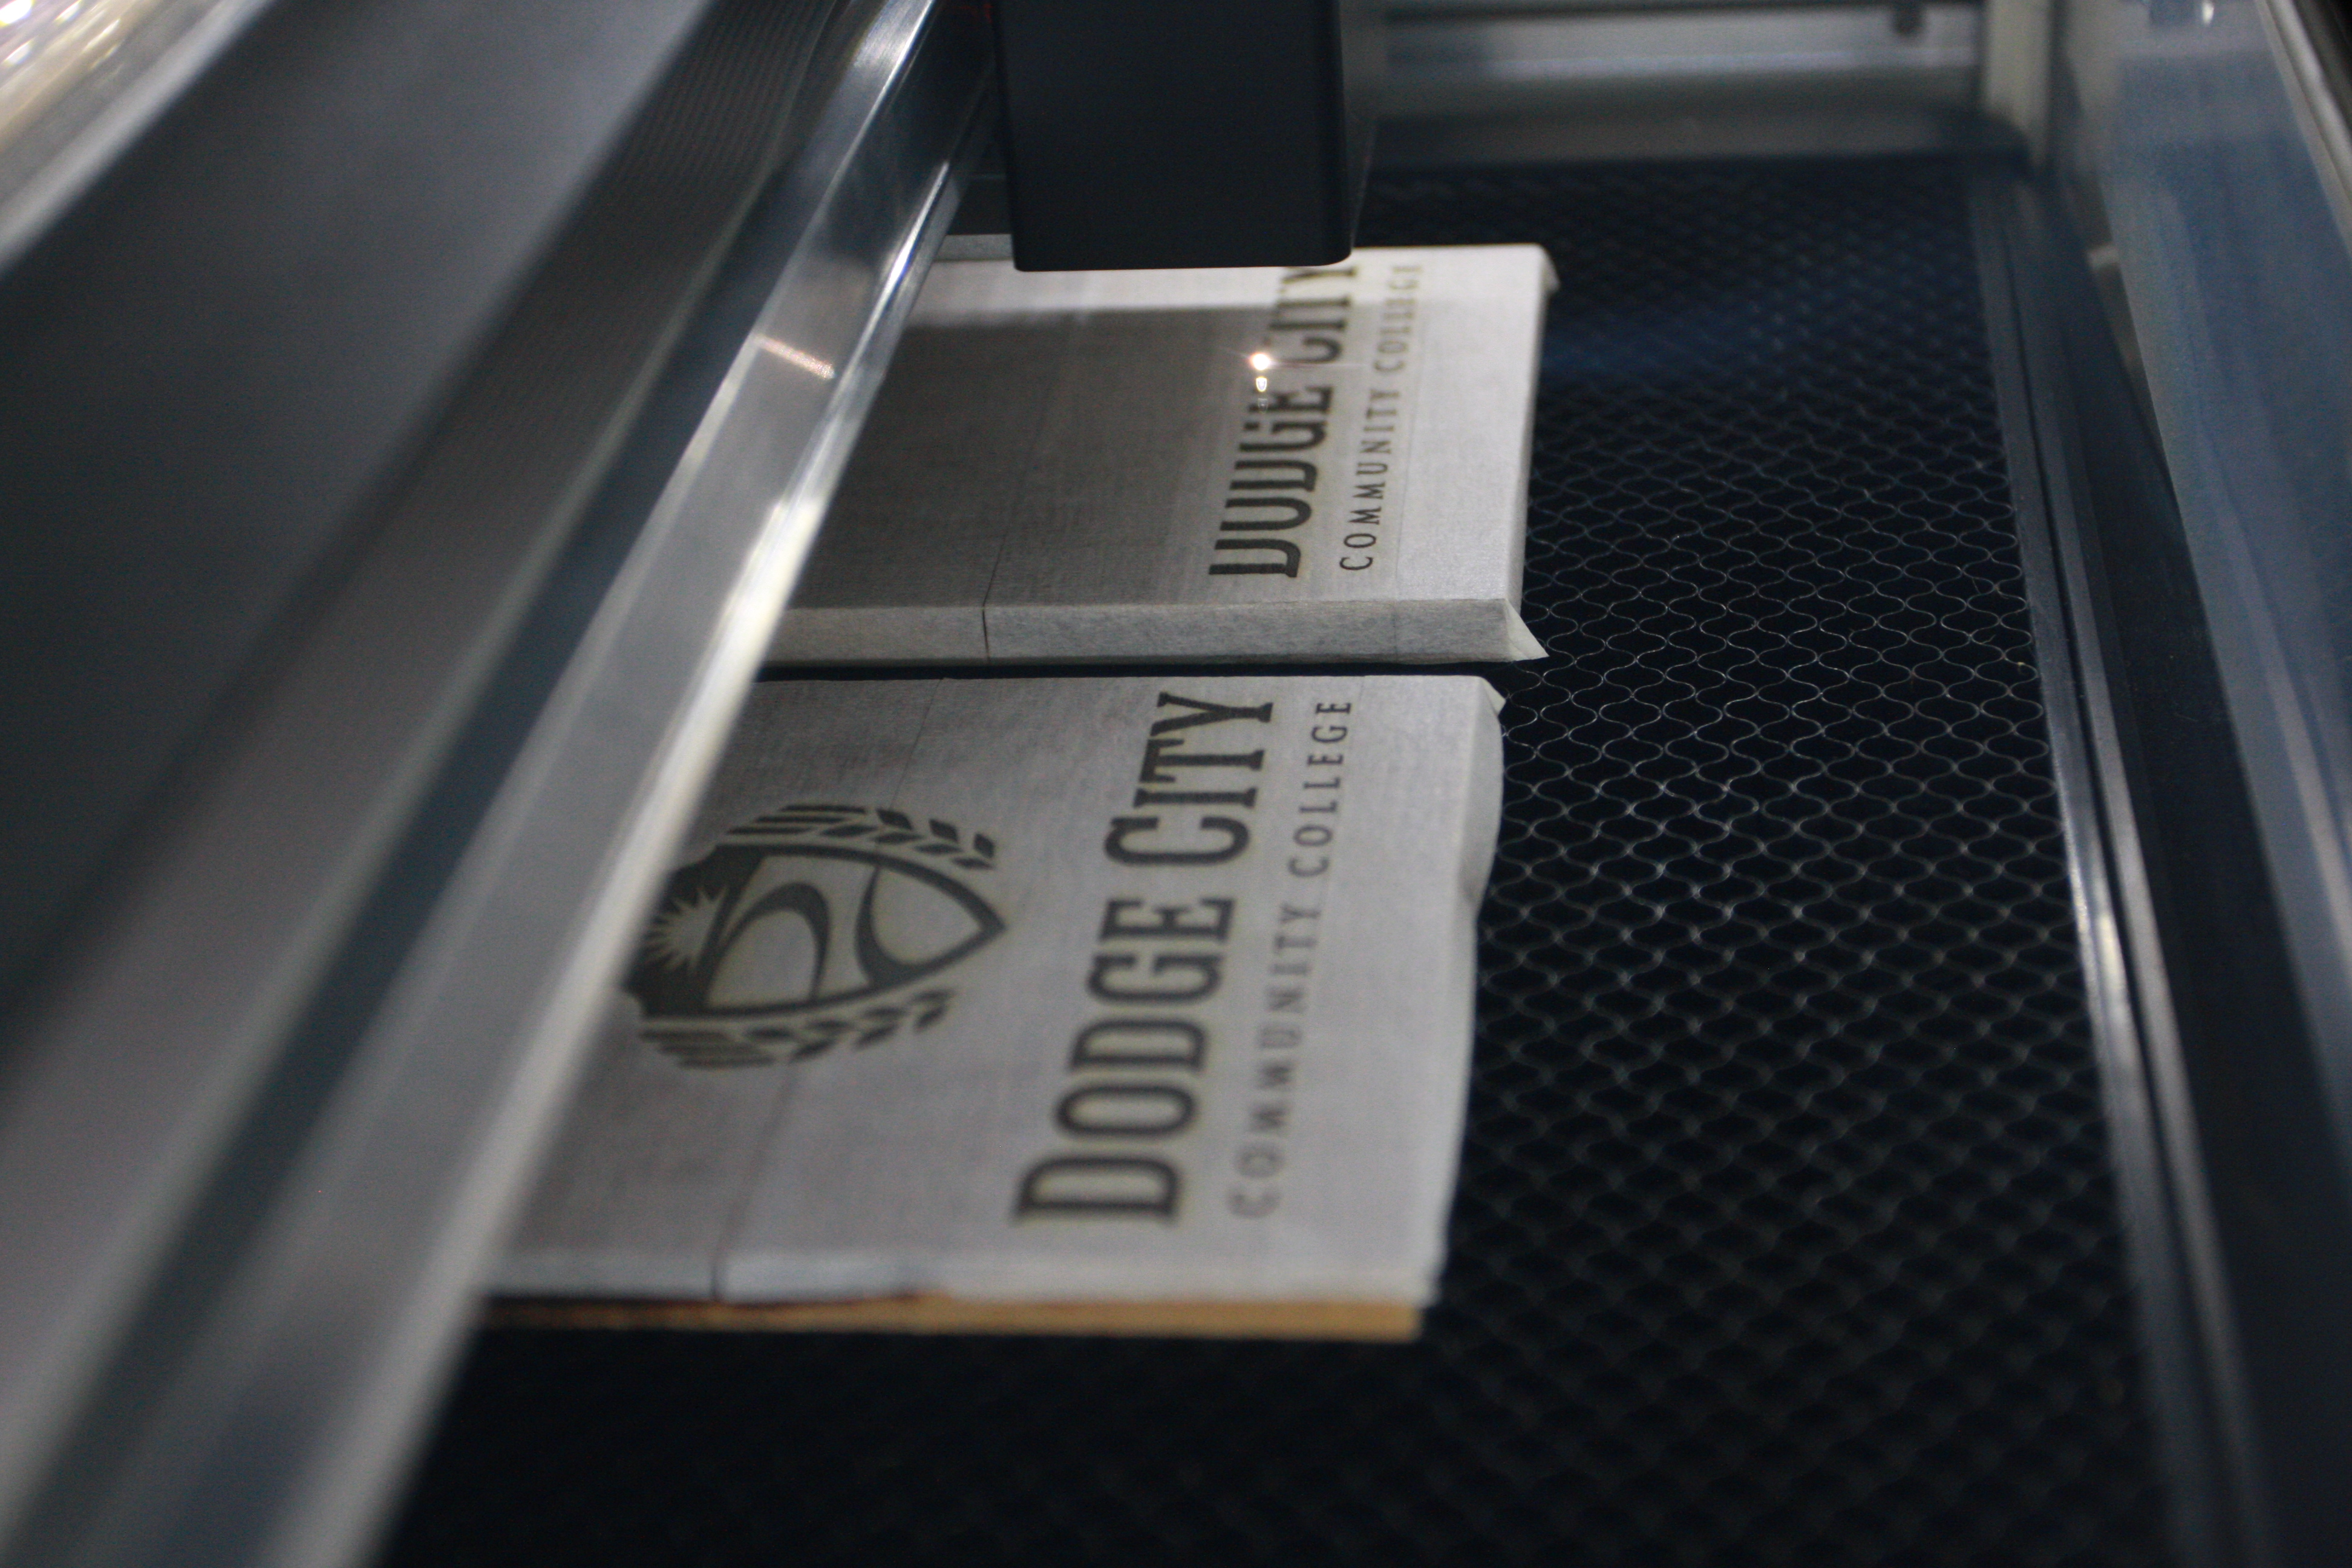 The Glowforge engraving wood tiles with the new DC3 academic logo